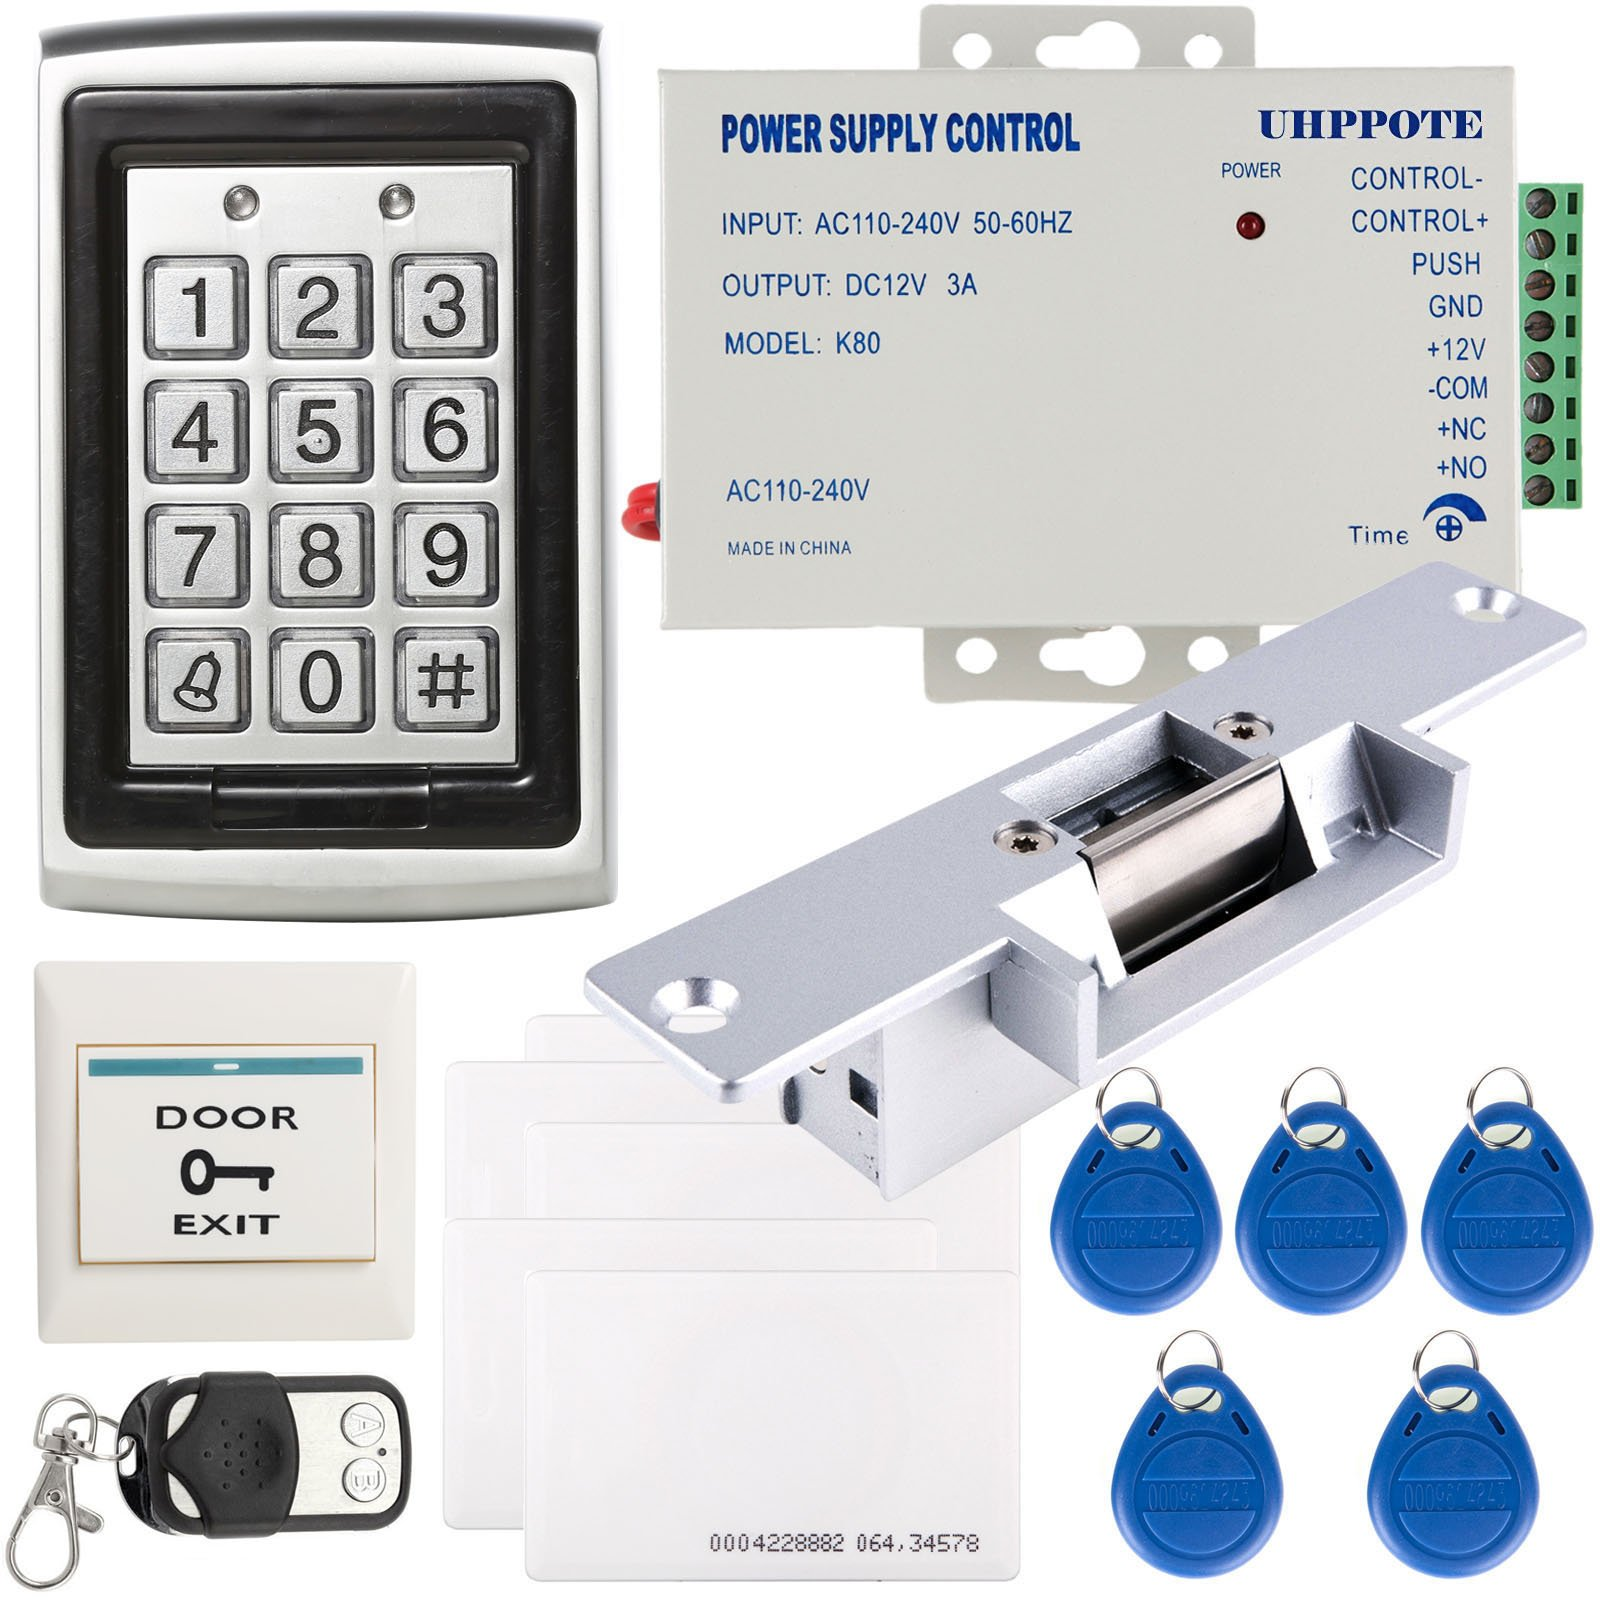 UHPPOTE Full Complete Metal Shell Case 125Khz ID One-door Access Control Machine Unit With Electric Strike Lock 3A Power Supply Remote